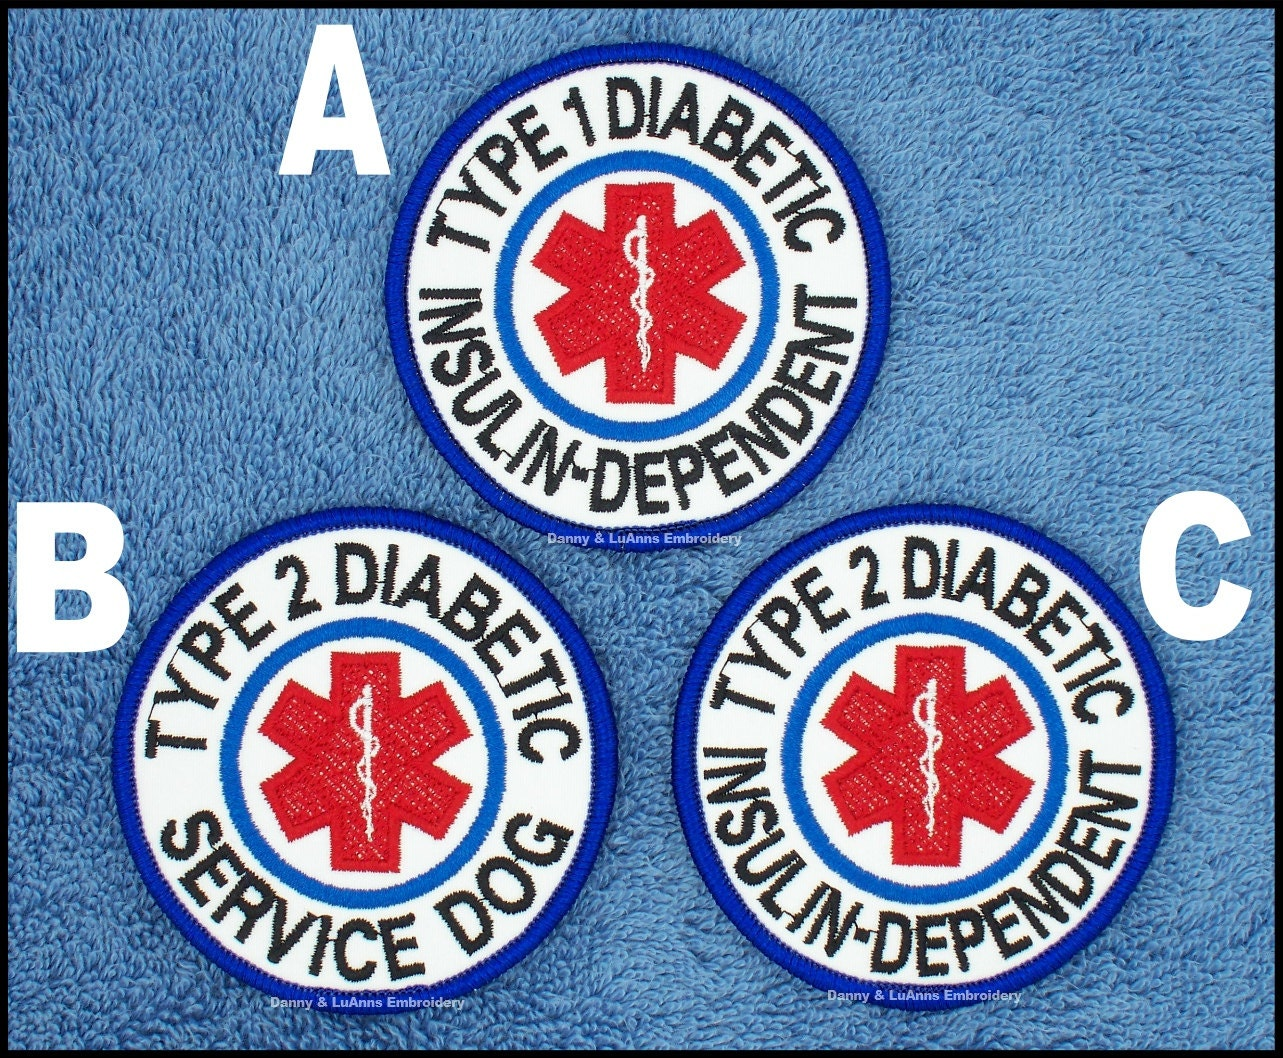 Type 1 type 2 diabetic insulin dependent service dog patch zoom buycottarizona Choice Image